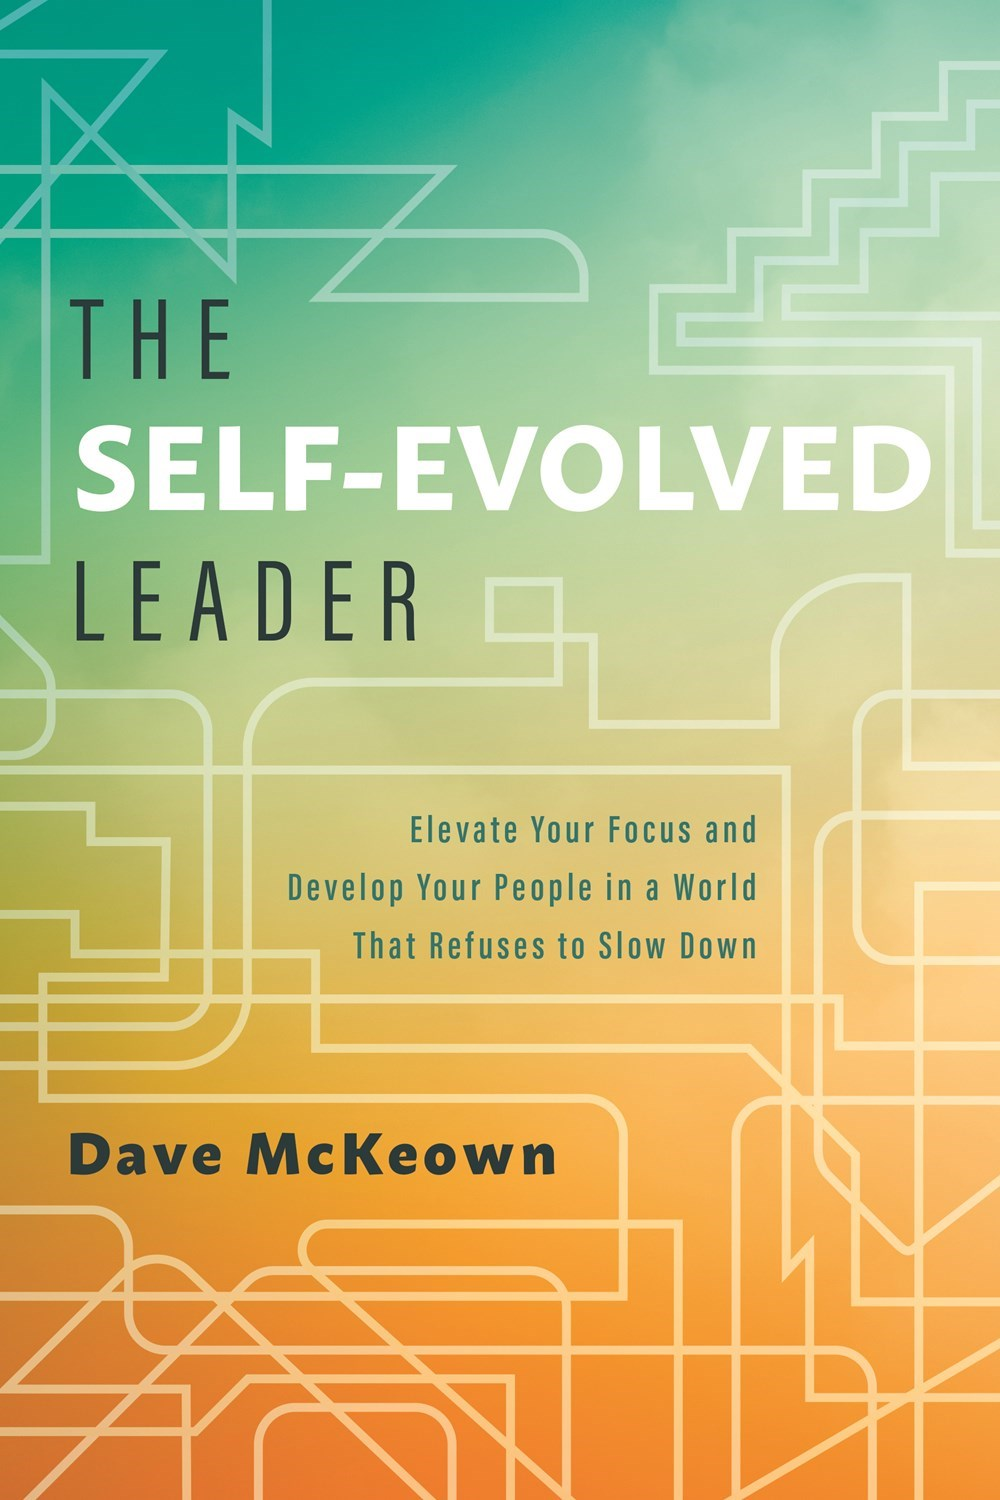 Self-Evolved Leader Elevate Your Focus and Develop Your People in a World That Refuses to Slow Down